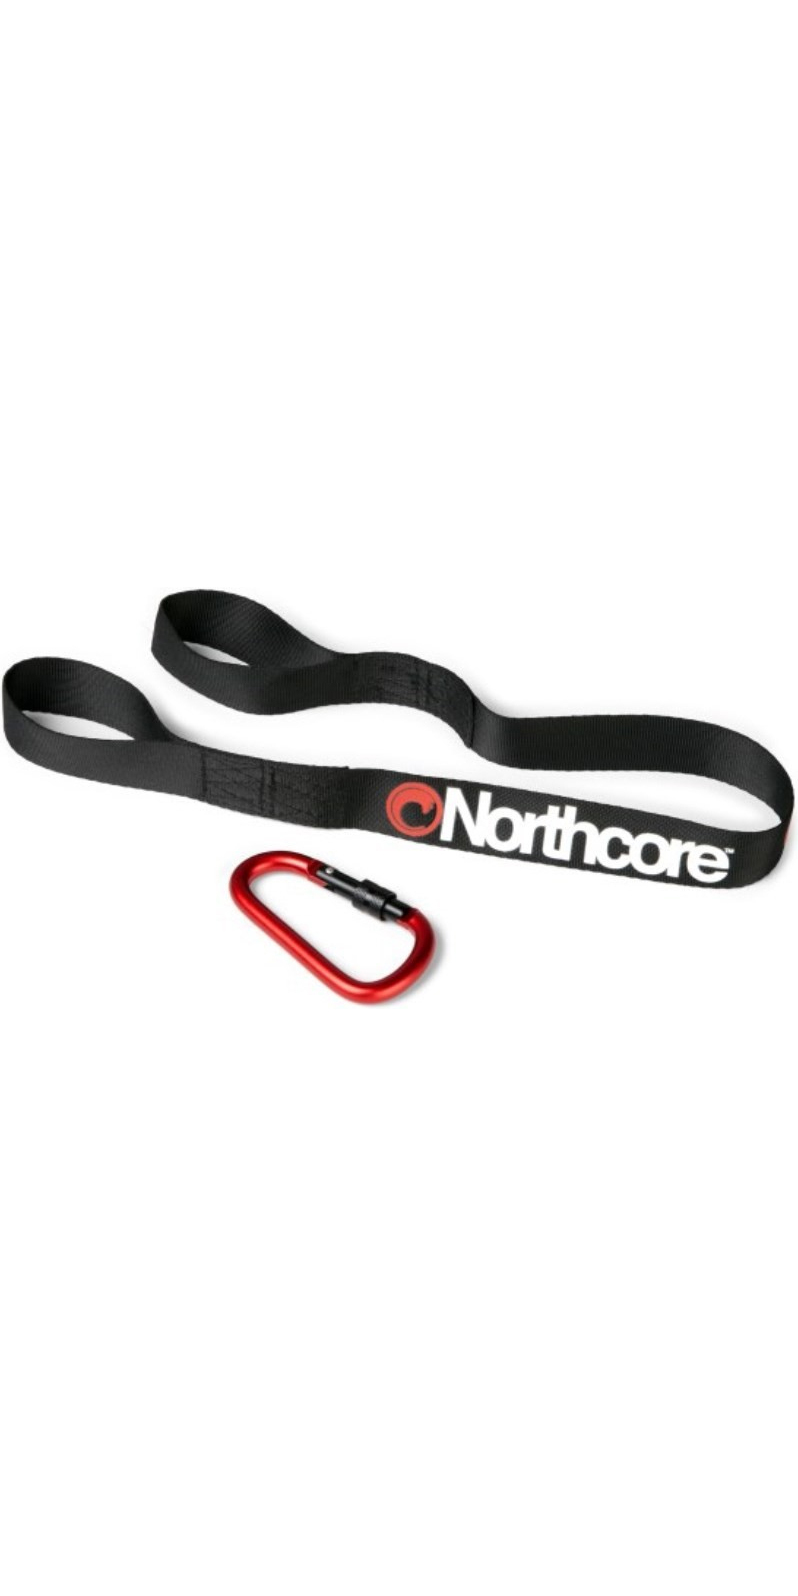 2019 Northcore Wetsuit Tree Hanger Strap NOCO111